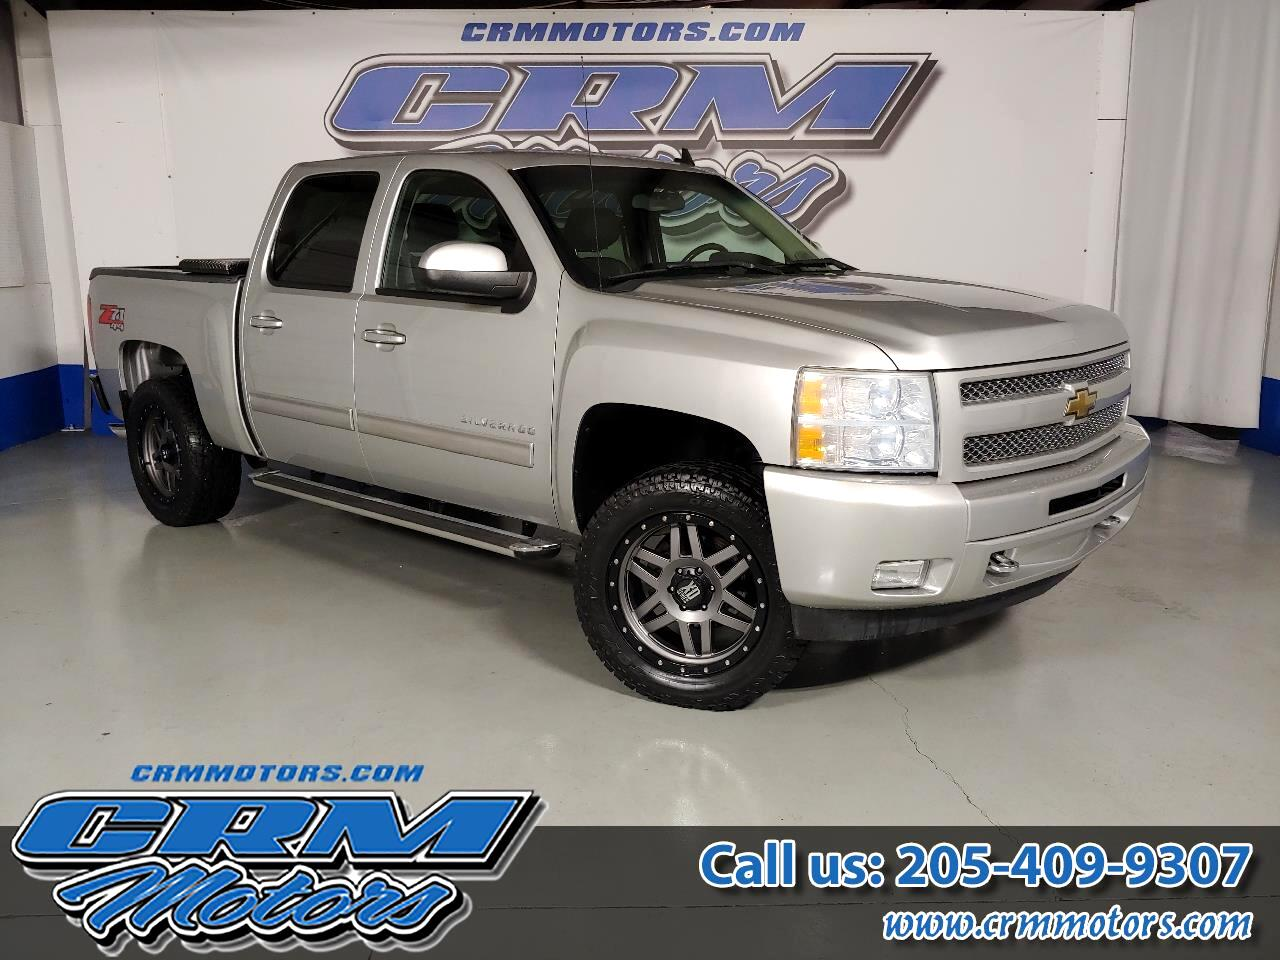 2011 Chevrolet Silverado 1500 4WD, Z71, LEVELED, CUSTOMER WHEELS & TIRES!